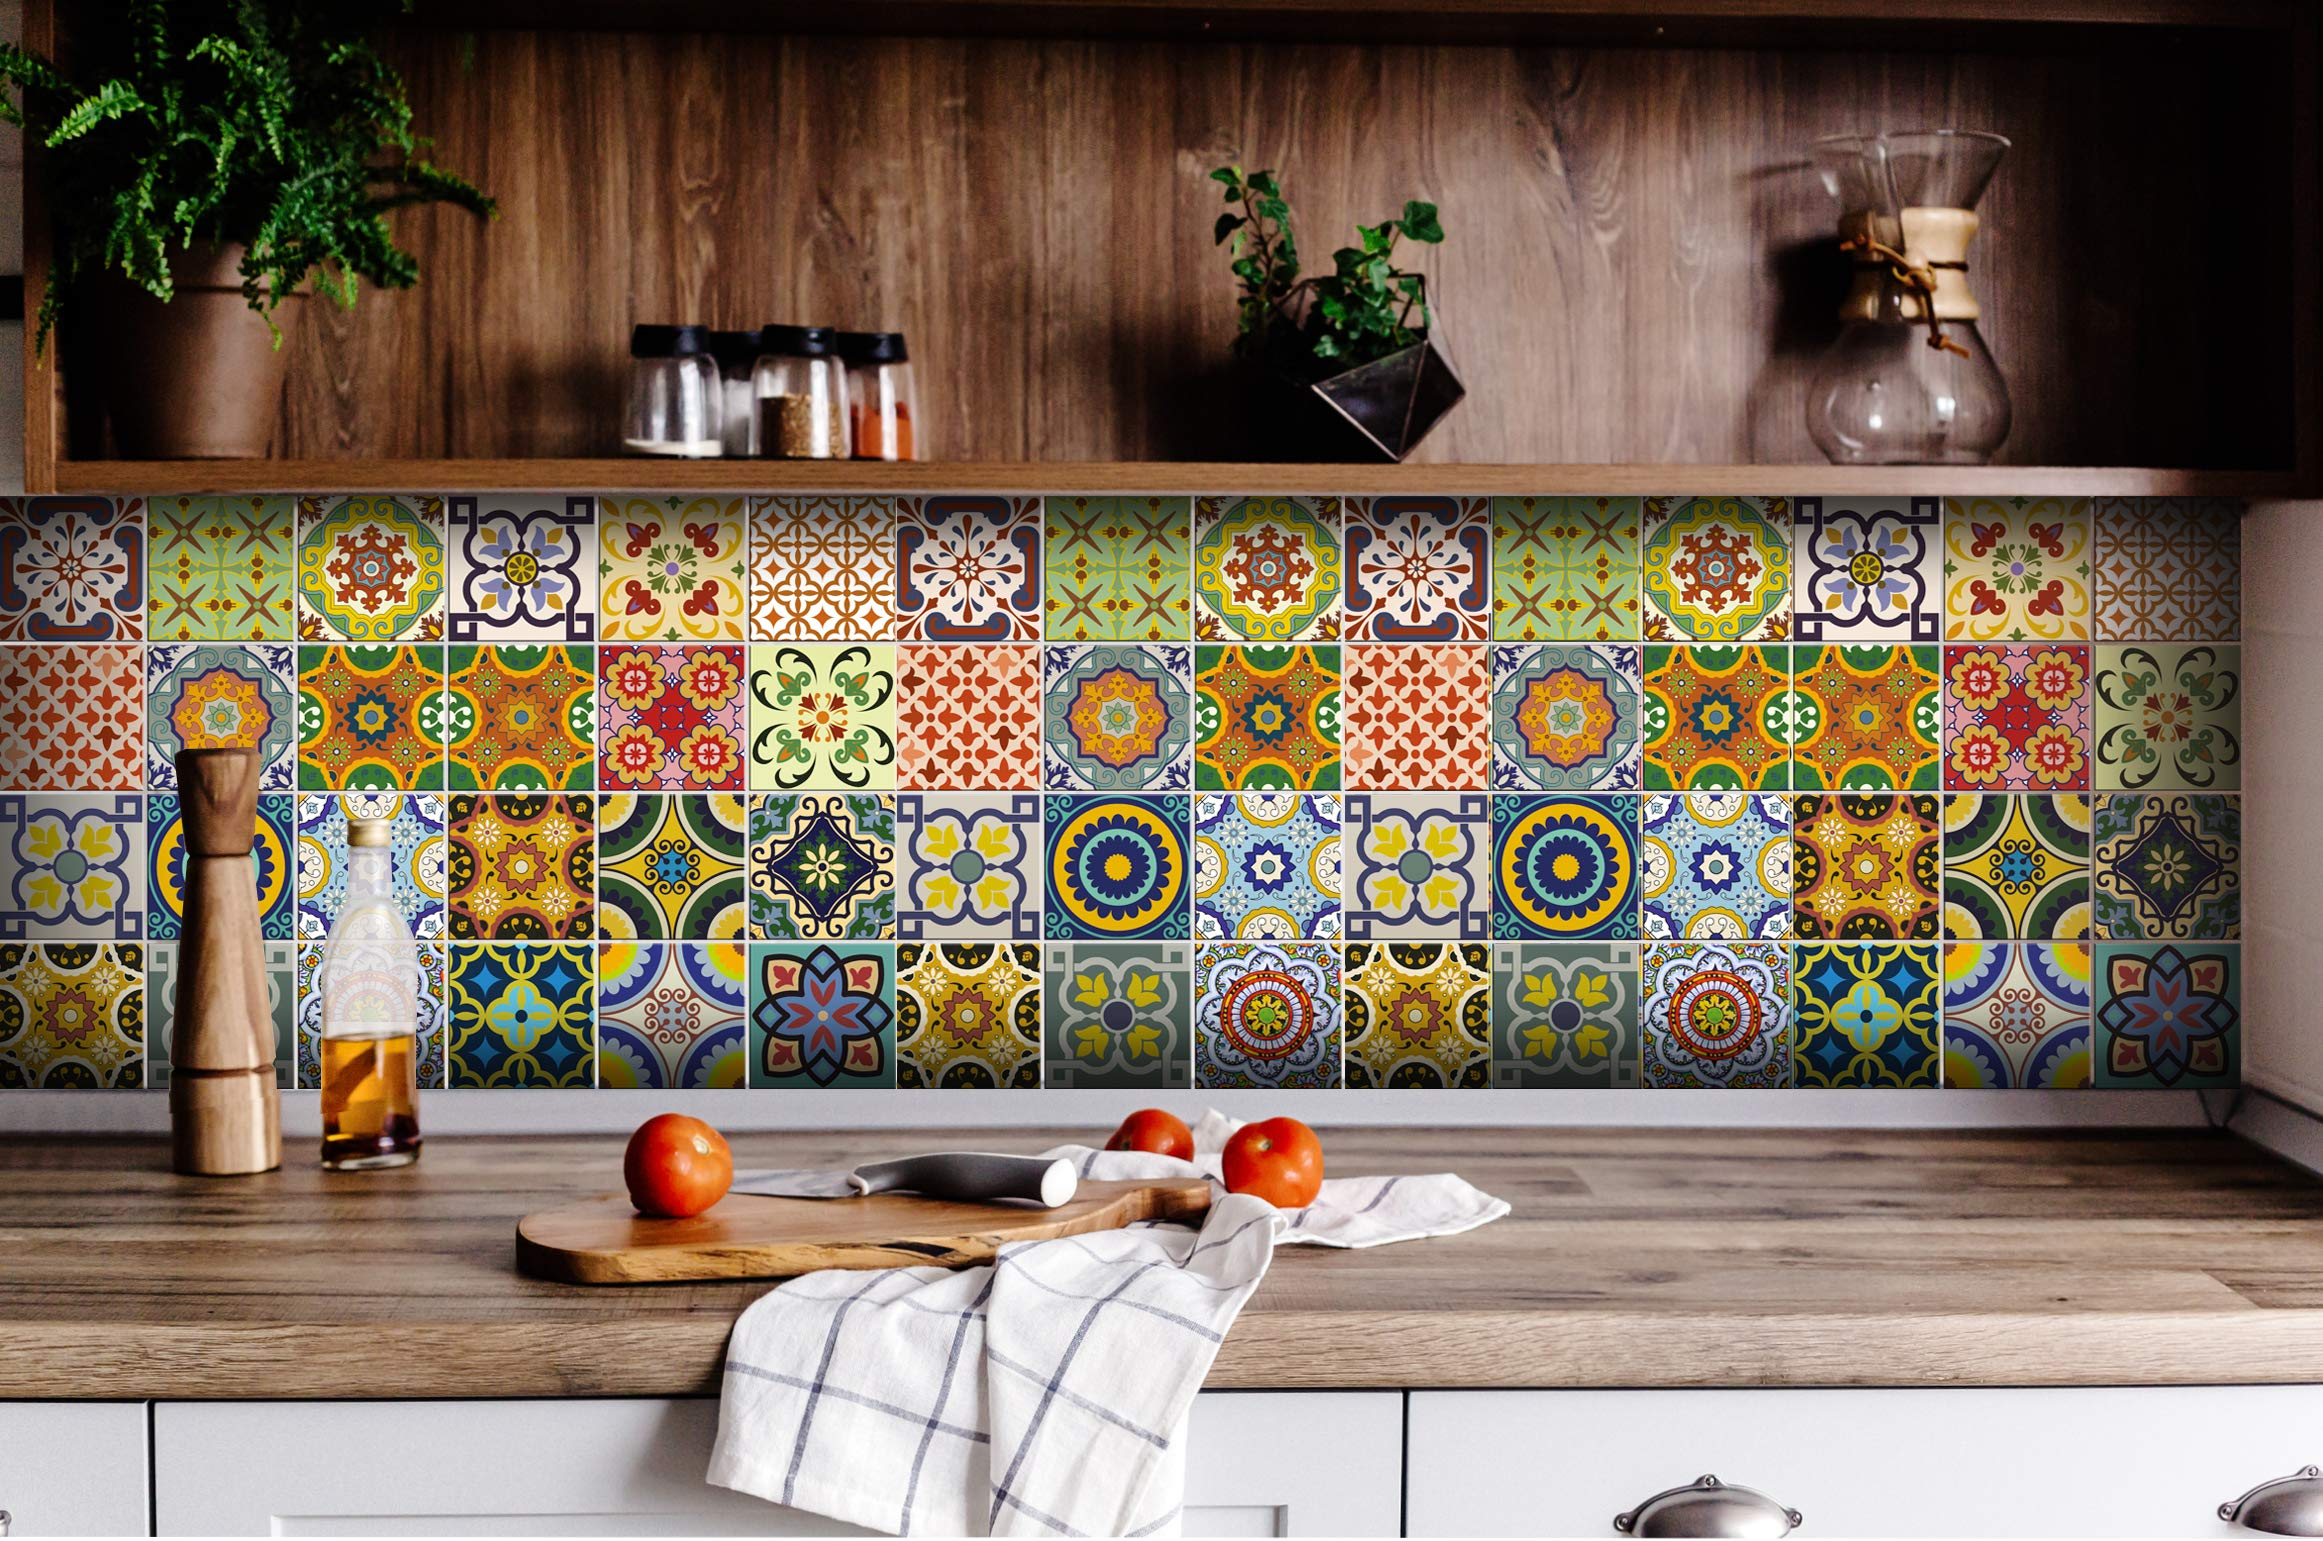 Tile Stickers 24 PC Set Traditional Talavera Tiles Stickers Bathroom & Kitchen Tile Decals Easy to Apply Just Peel & Stick Home Decor 6x6 Inch (Kitchen Tiles Stickers C1) by Alma-Art (Image #4)